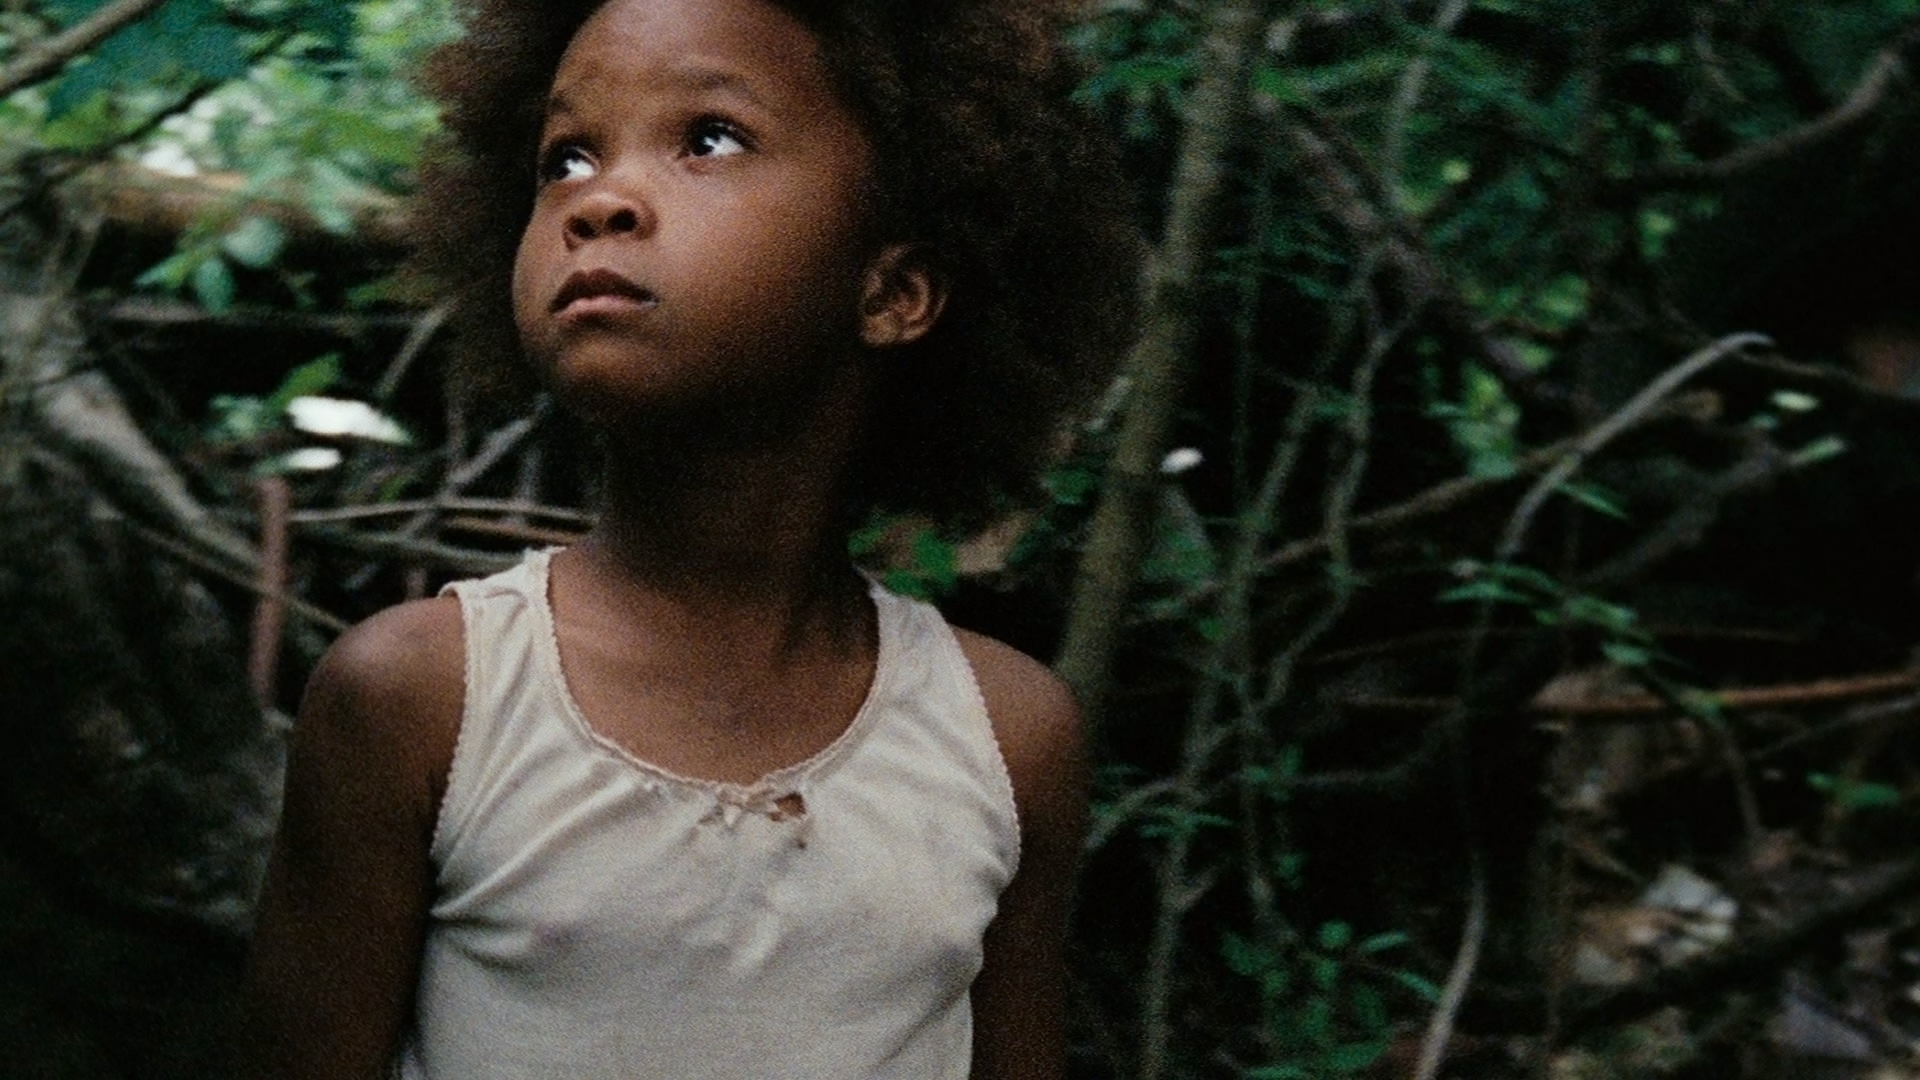 Beasts of the Southern Wild': Gender, Race and a Powerful Female